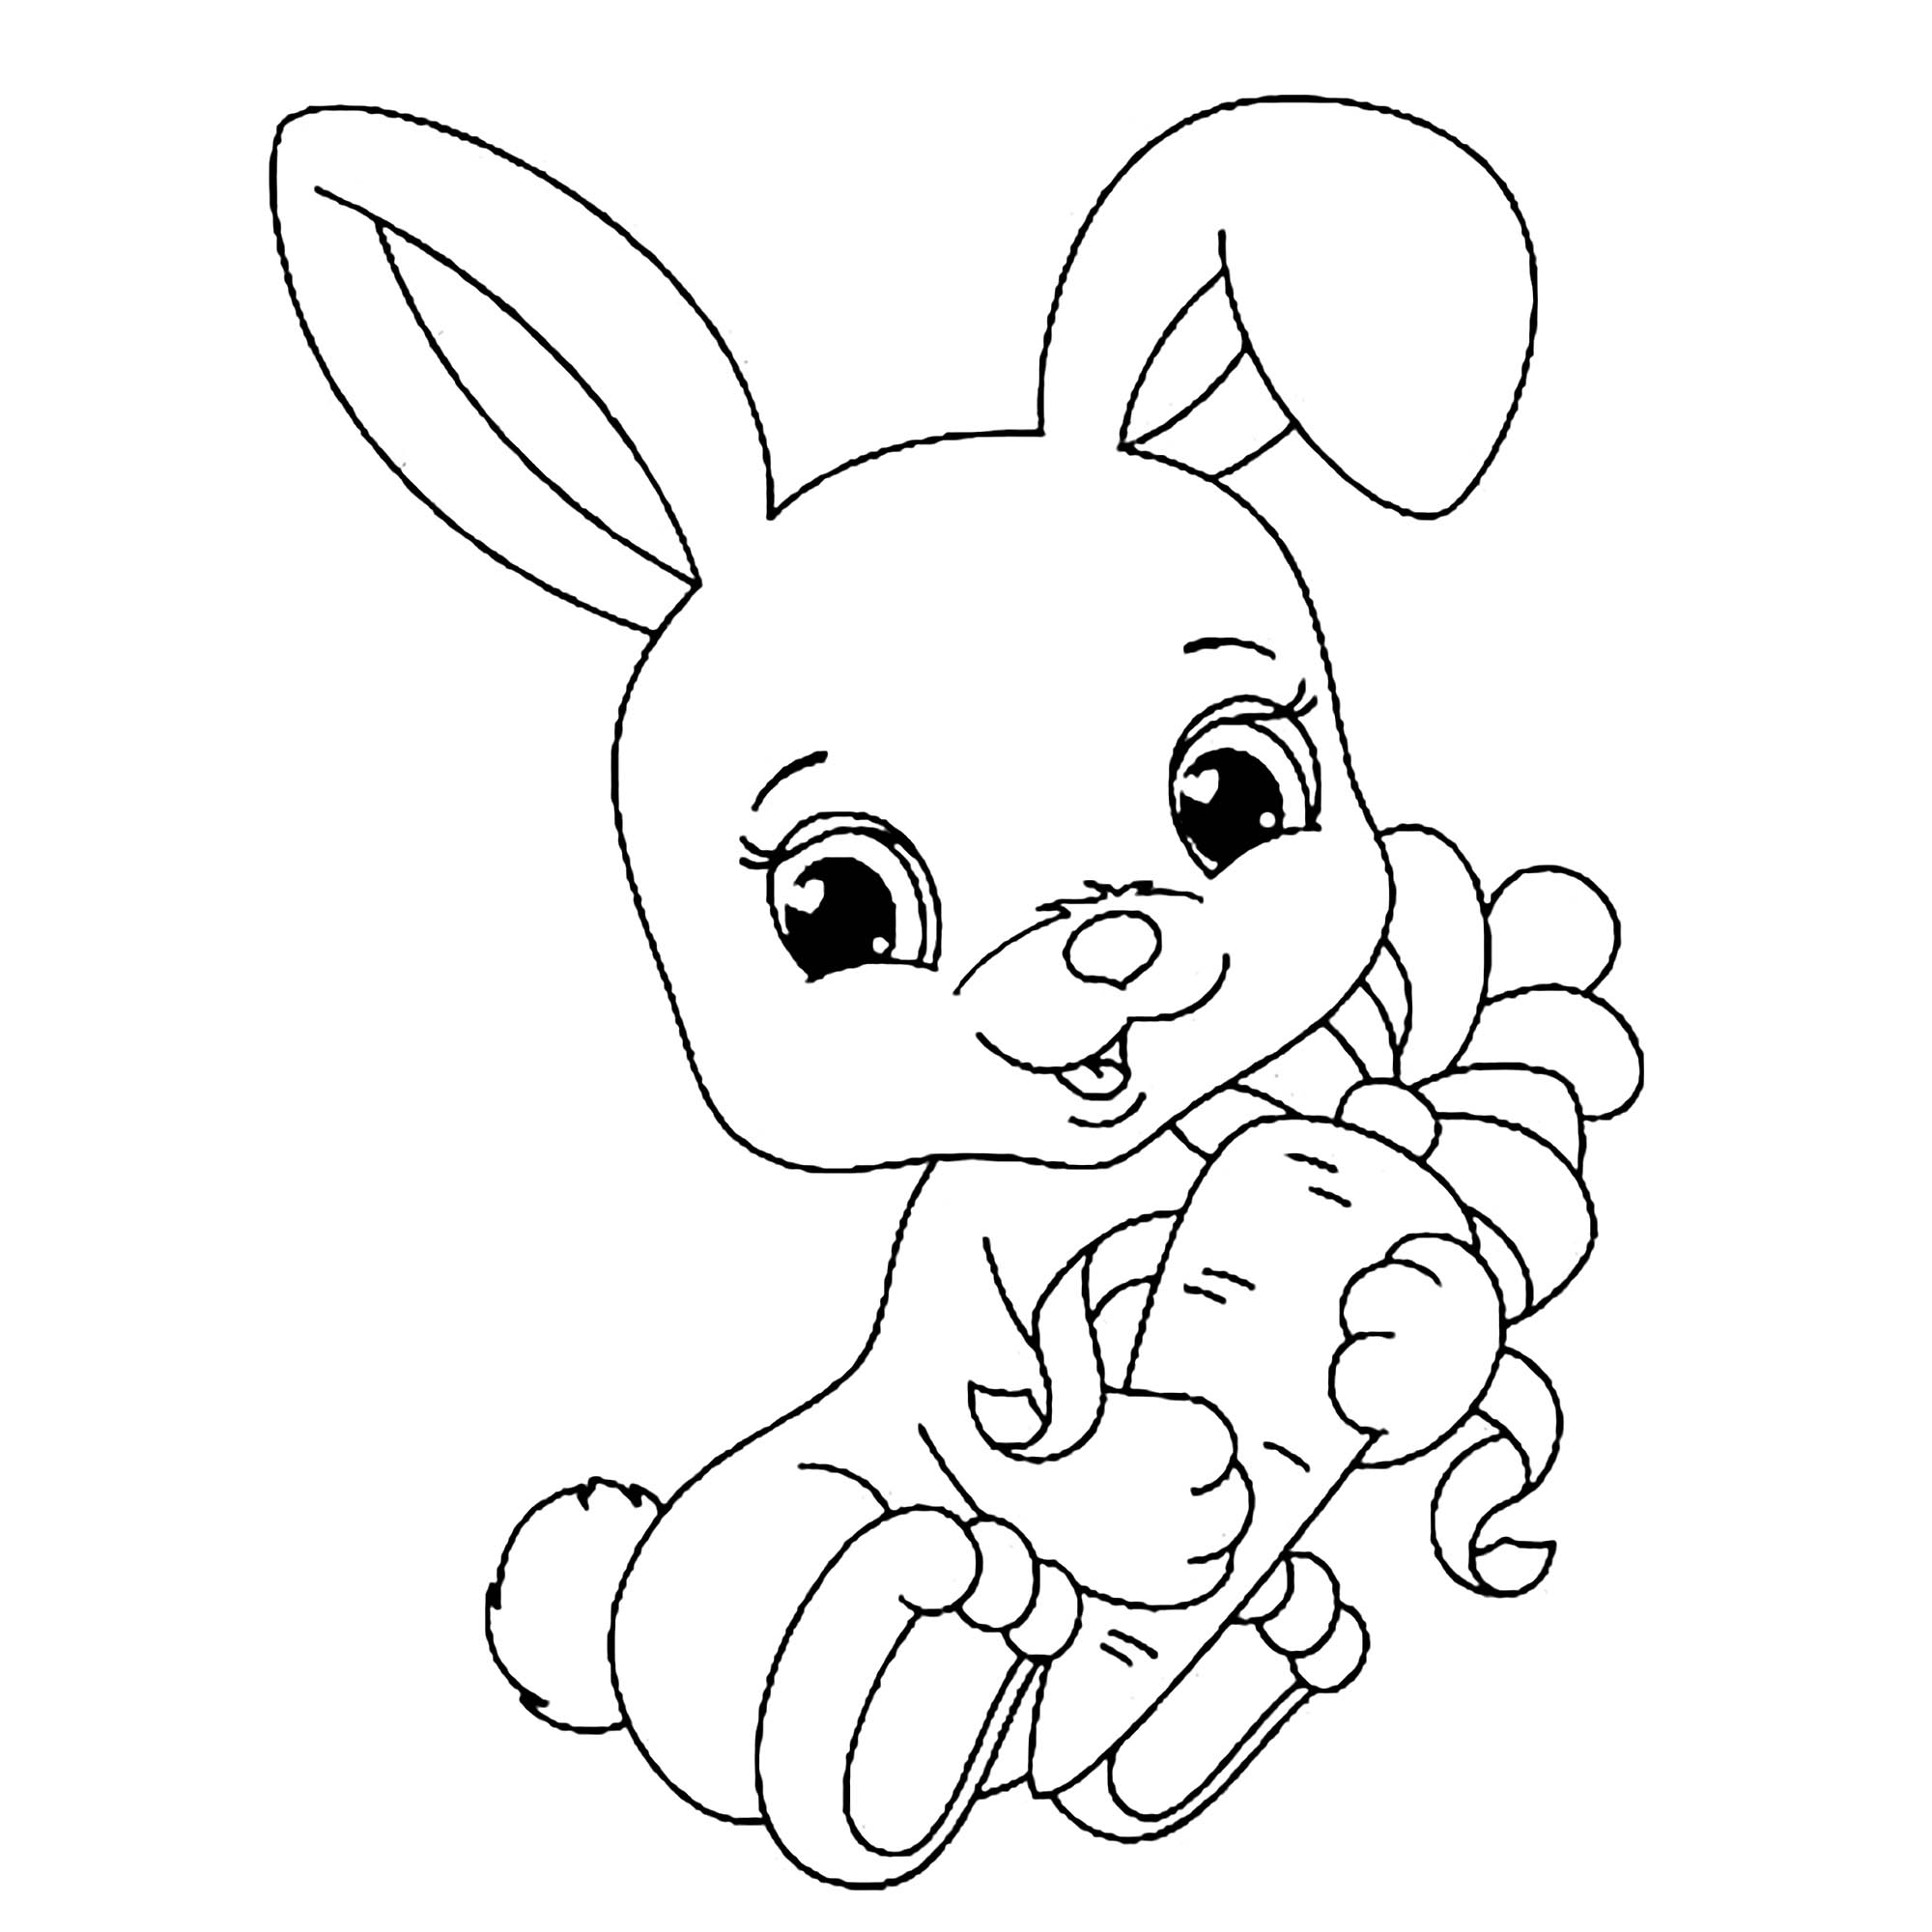 bunny picture to color bunny coloring pages best coloring pages for kids color picture to bunny